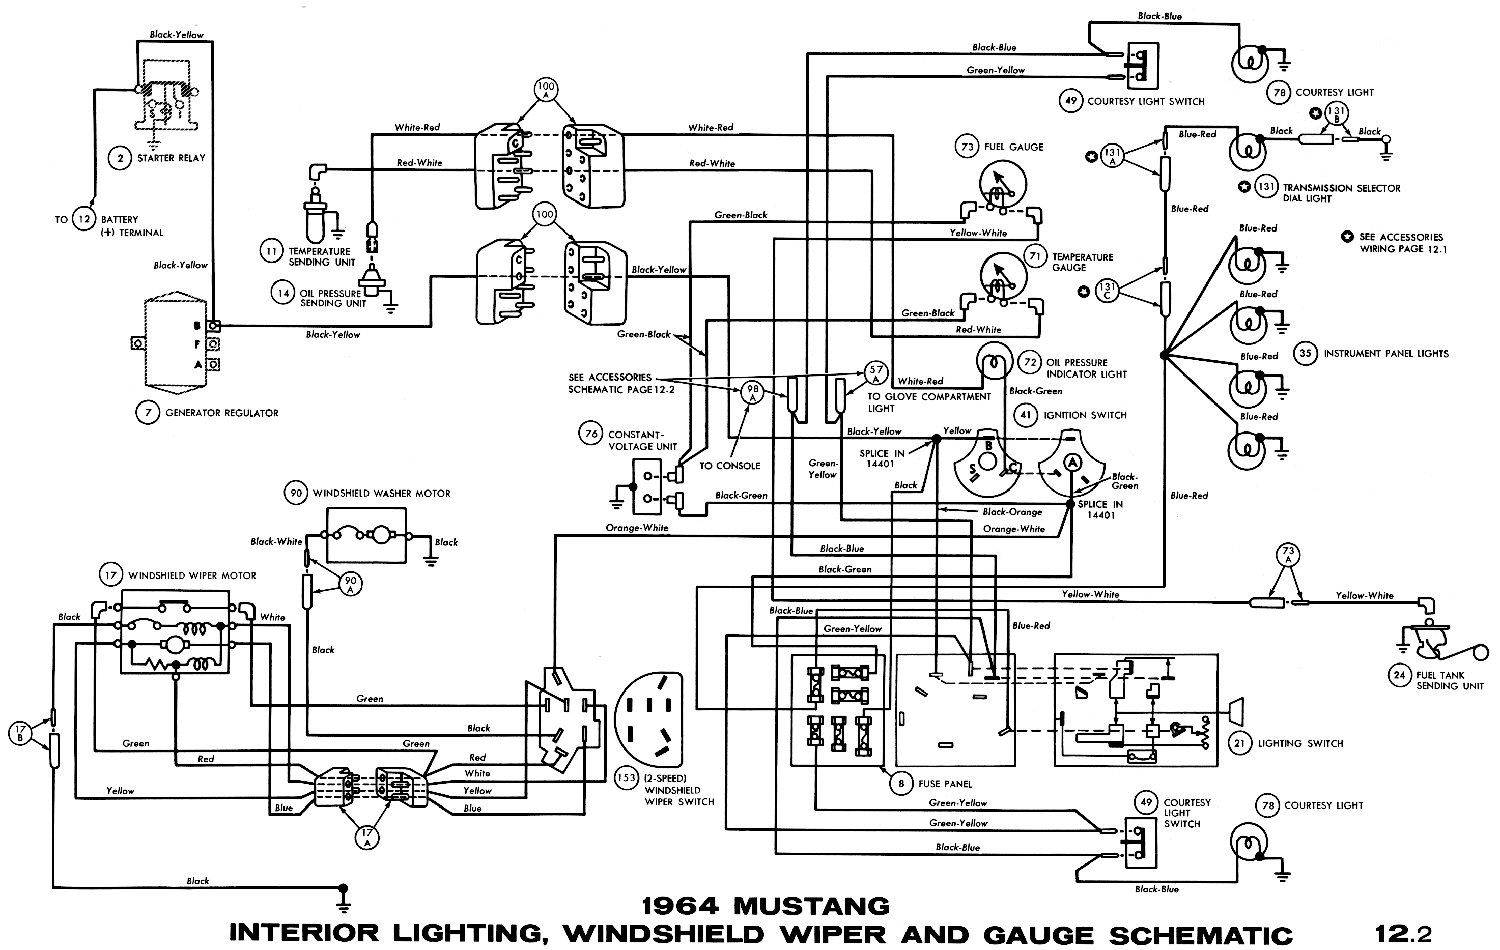 wiring harness upgrade with Wiring Harness For 1970 Ford Torino Gt on 7 3 Powerstroke Turbo Schematic Diagram likewise 1999 Tahoe Power Mirror Wiring Diagram 306913 moreover Turbo V6 Fuel Injector Harness Hotwire Kit Upgrade additionally Viewtopic moreover 102540 Alternator Wire Thickness.